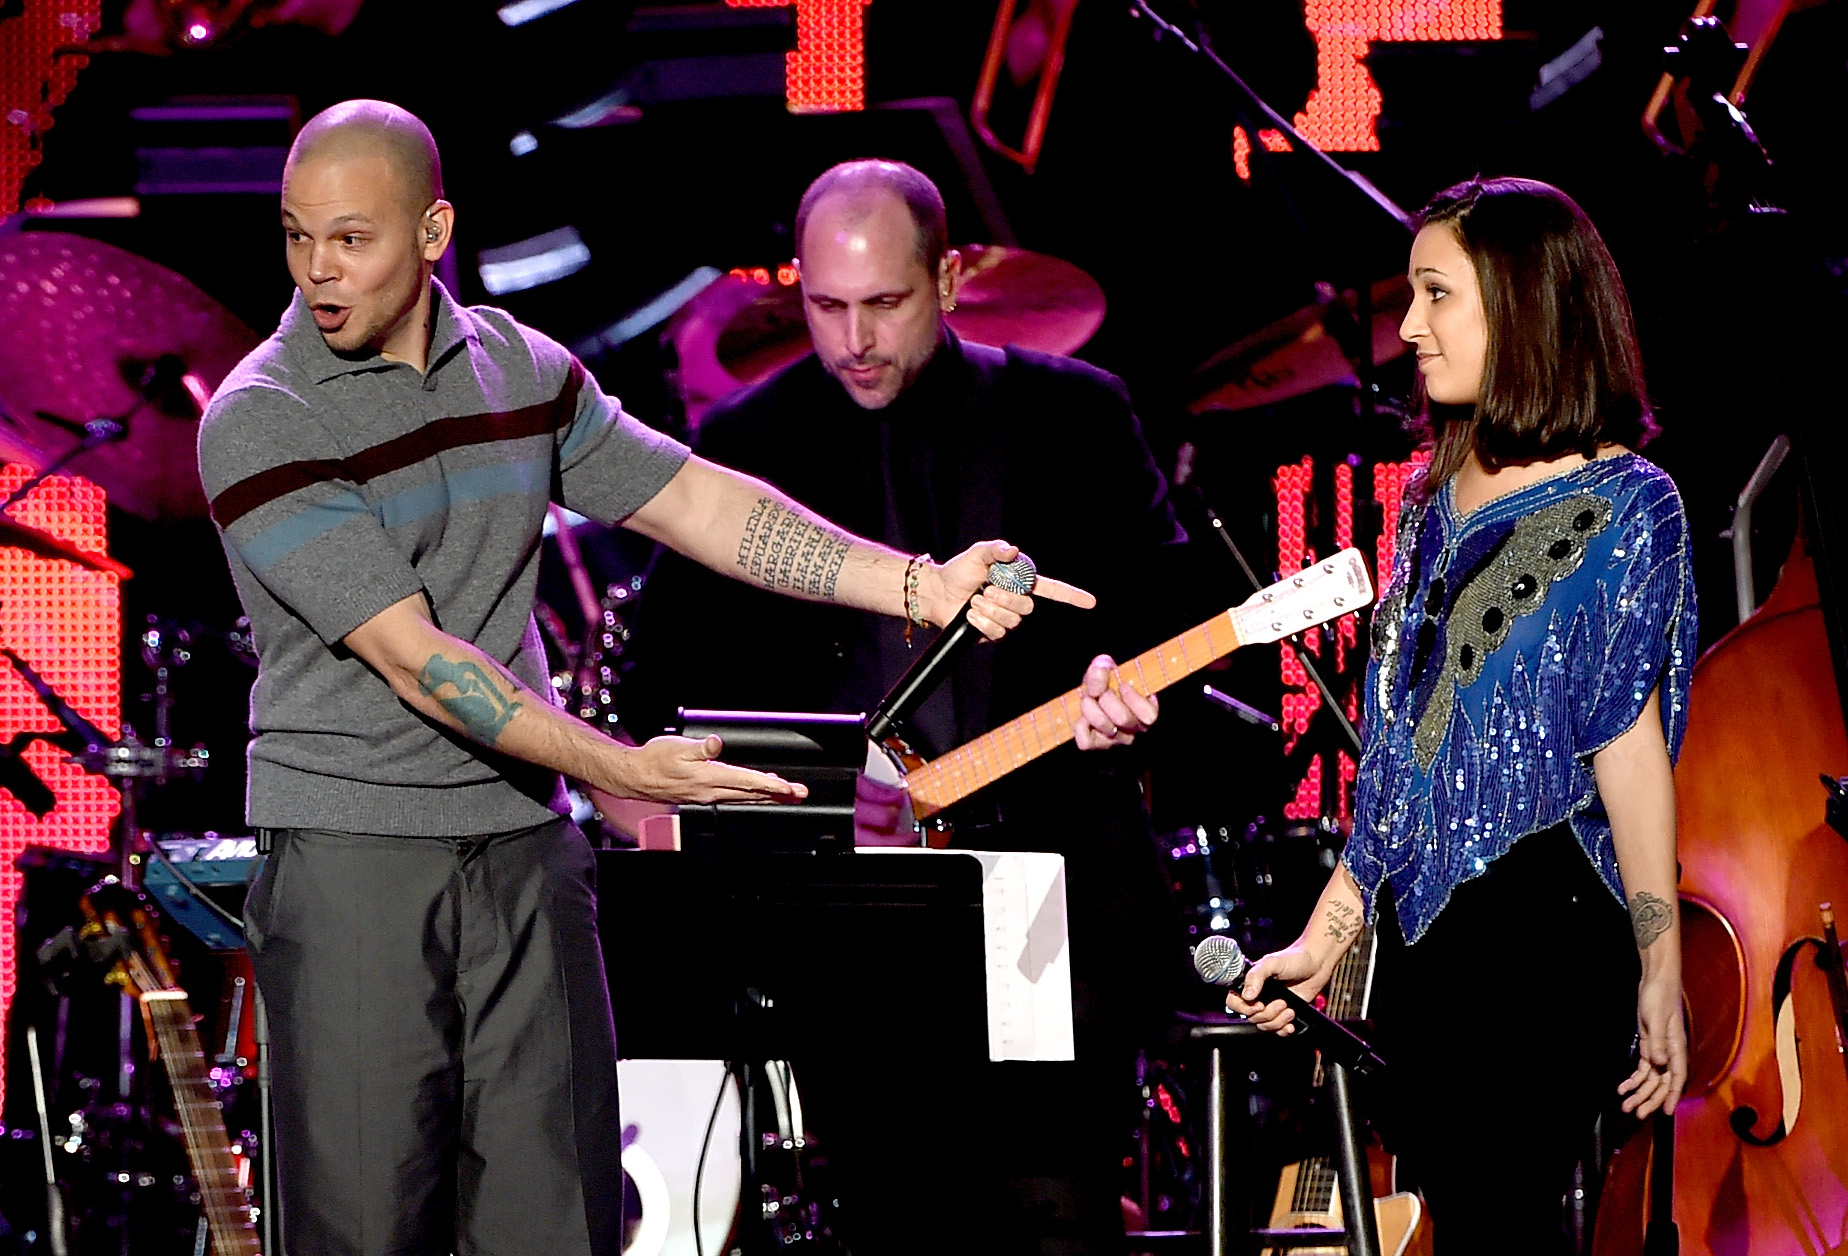 Ile and Residente Calle 13